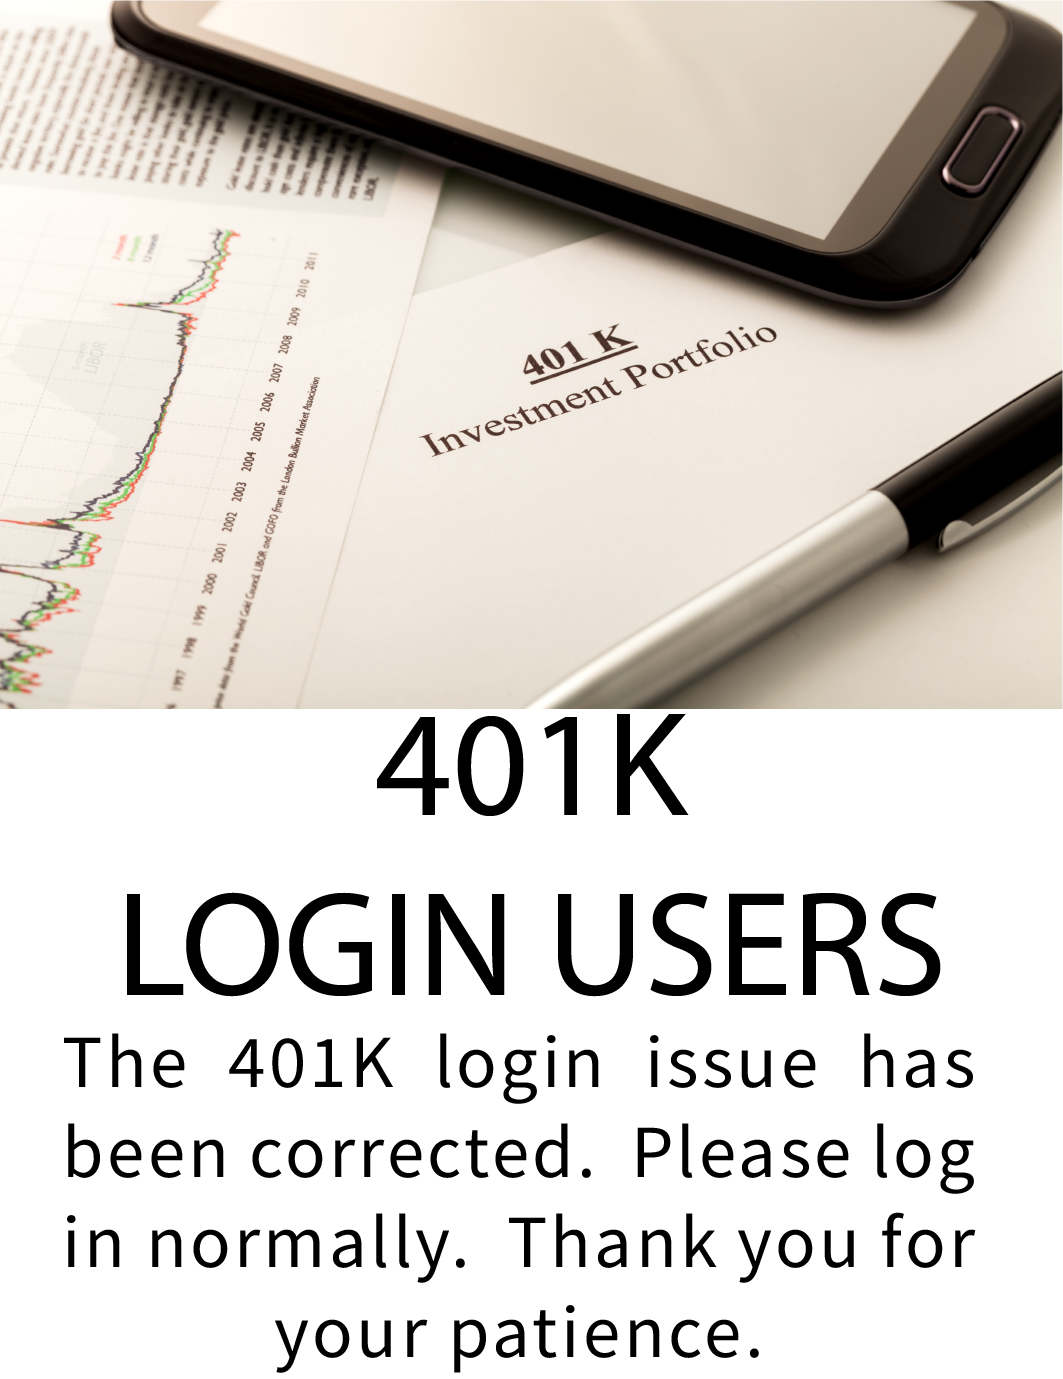 401k login has been corrected